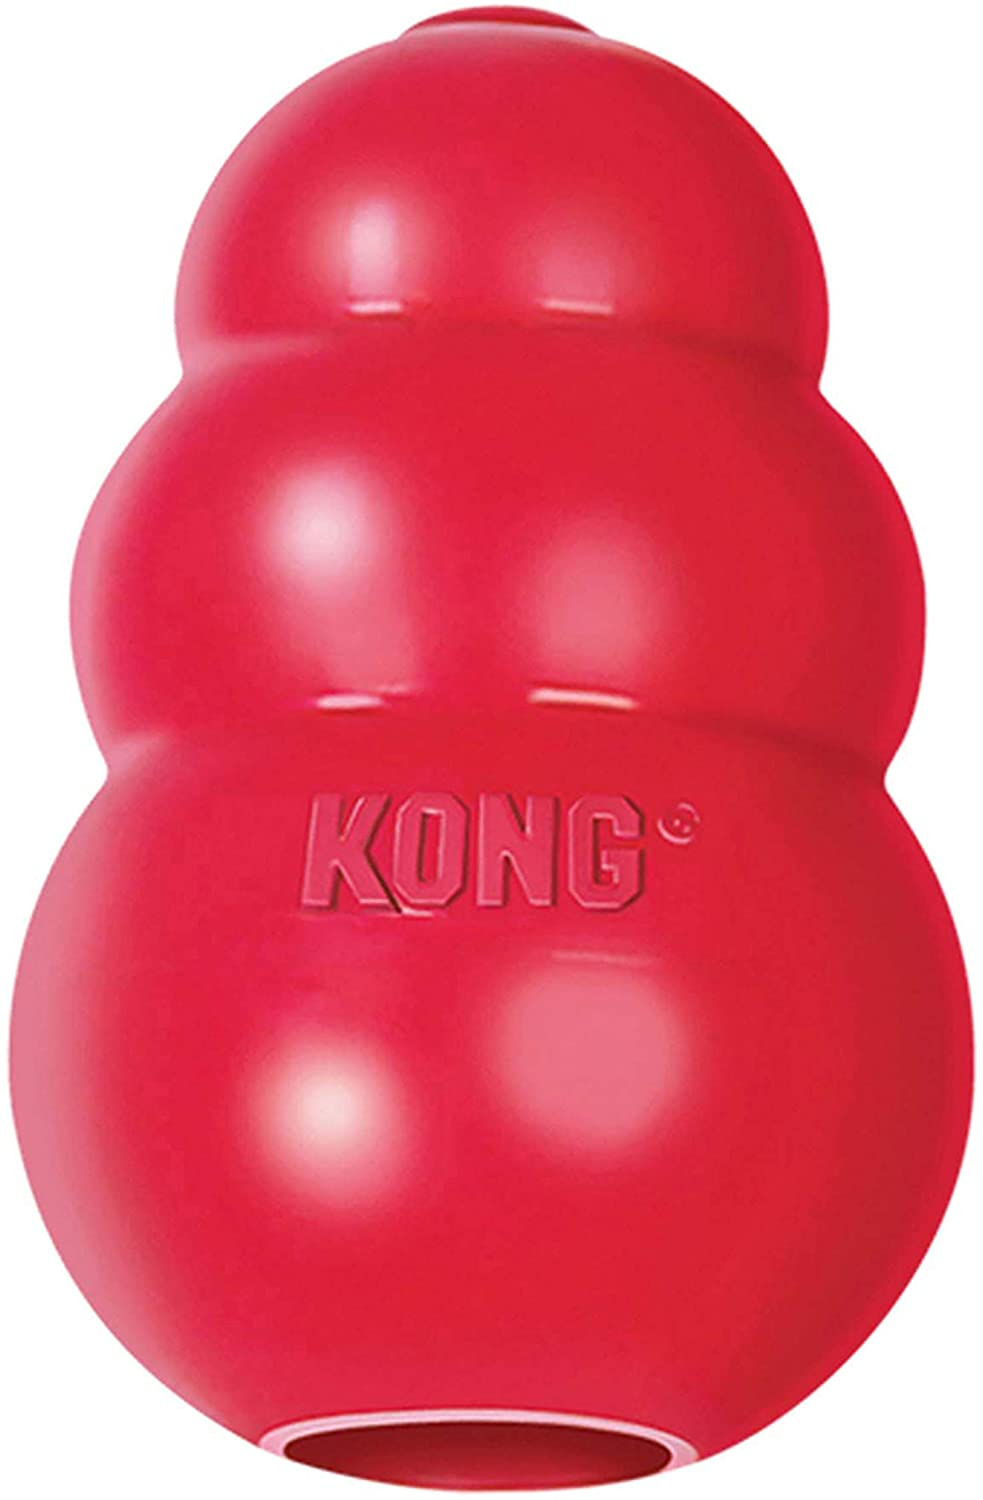 Kong Food dispensing toy for dogs great rawhide alternative